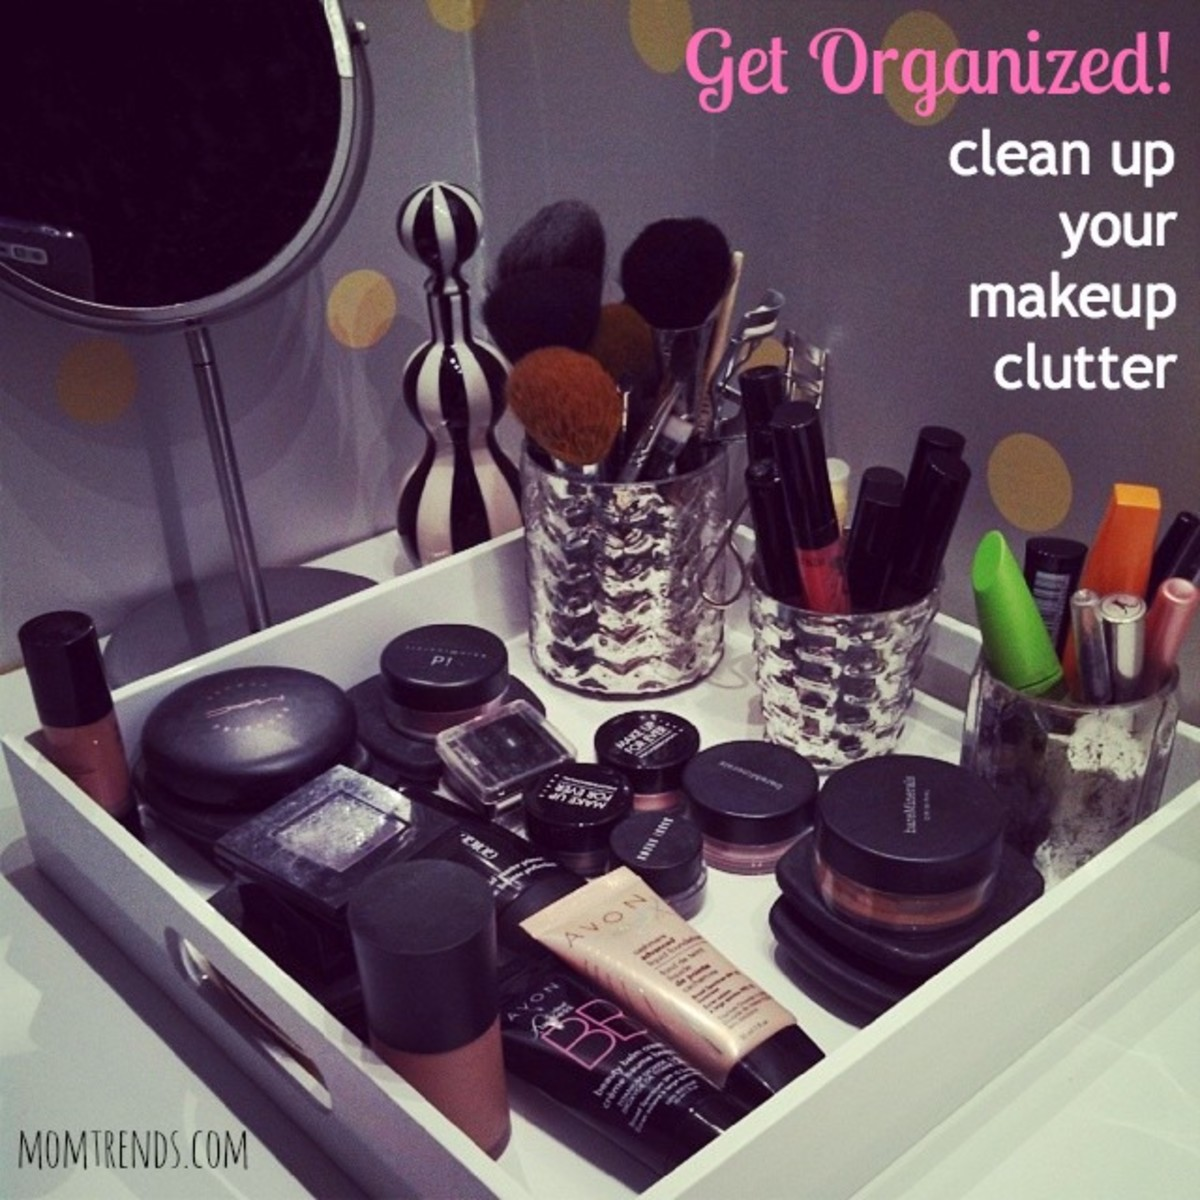 makeup organization, makeup storage, clean up your makeup, organized moms, organize your life, clean up your clutter